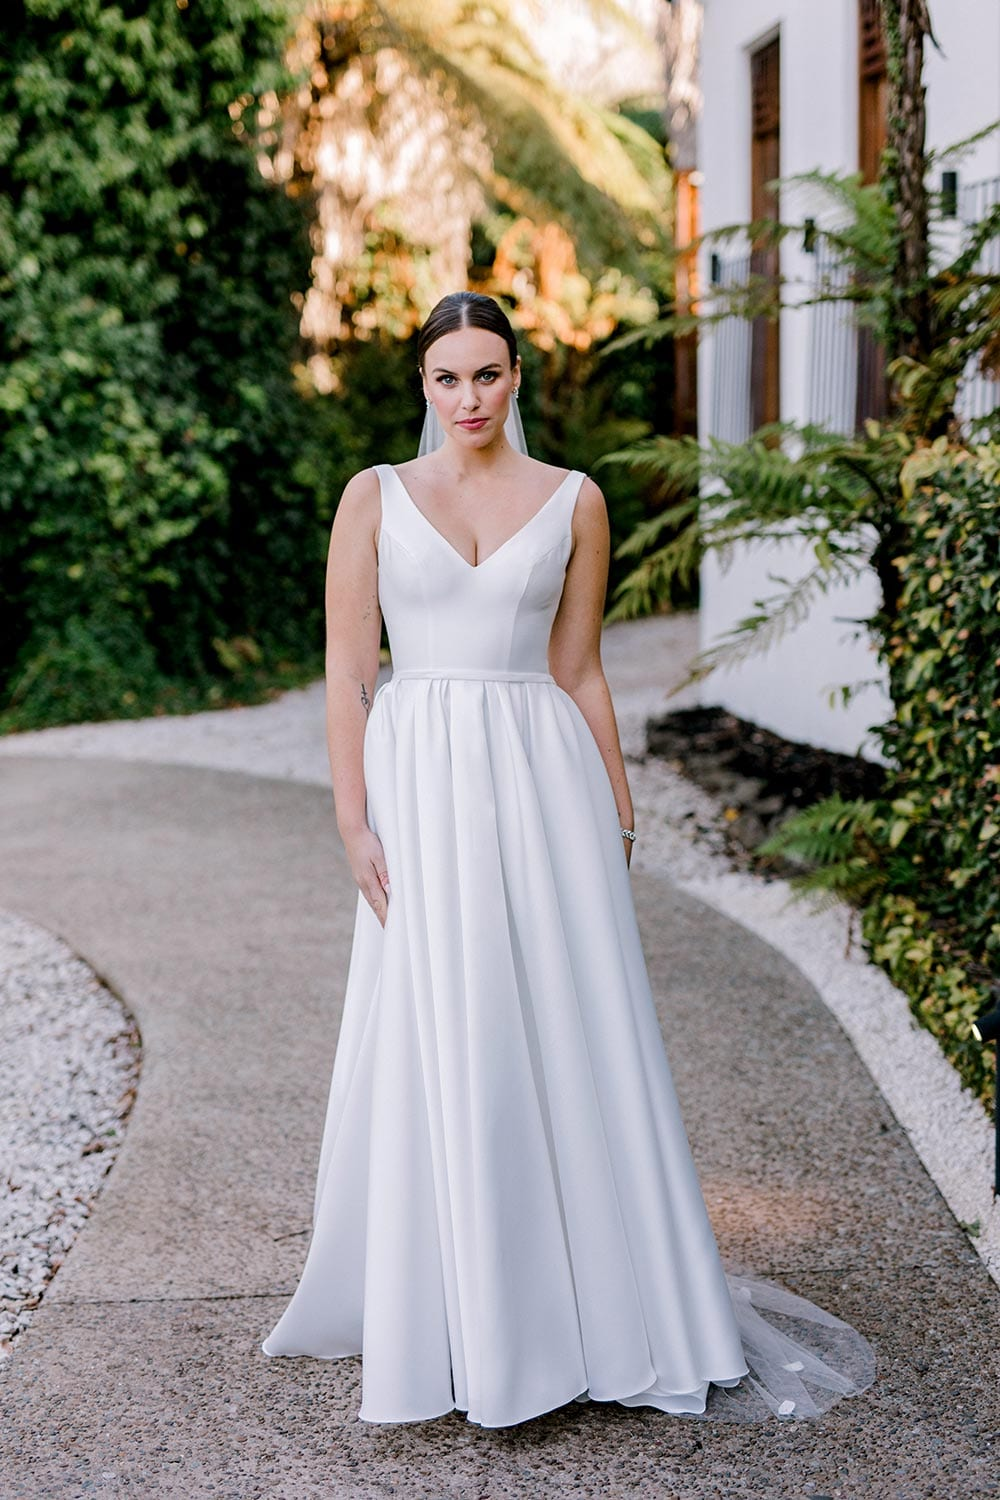 Madison Wedding Dress from Vinka Design. Classic Mikado satin wedding dress. Structured bodice with deep V-neckline & low back. Side pockets in the skirt give fun & versatility, with a sweeping train. Full length view of gown from the front. Photographed outdoors.